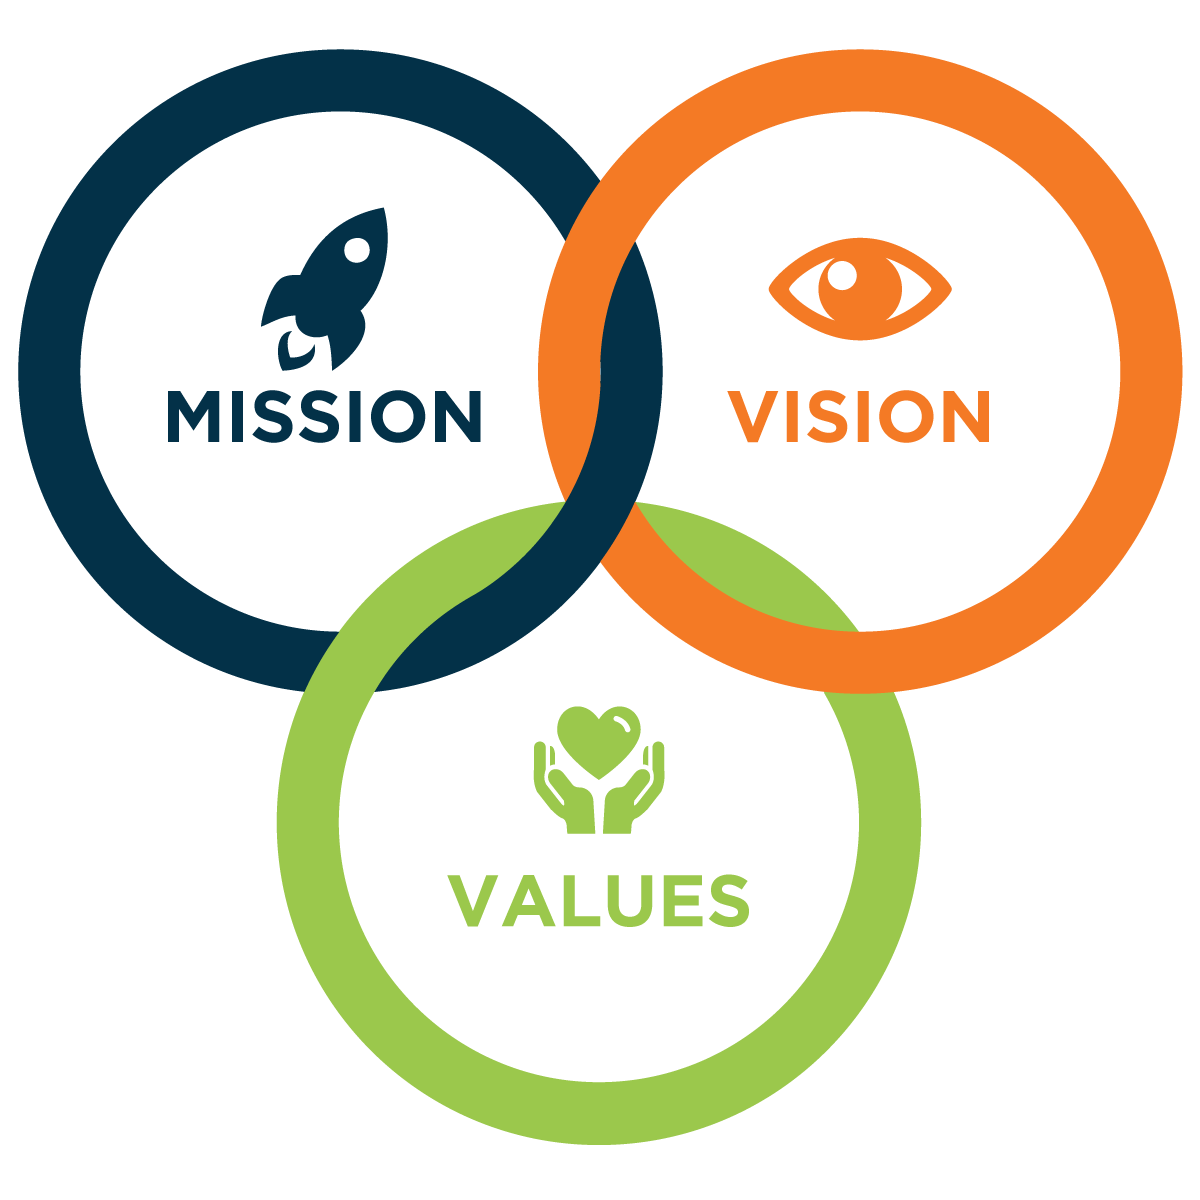 Vision statement png. Mission and values